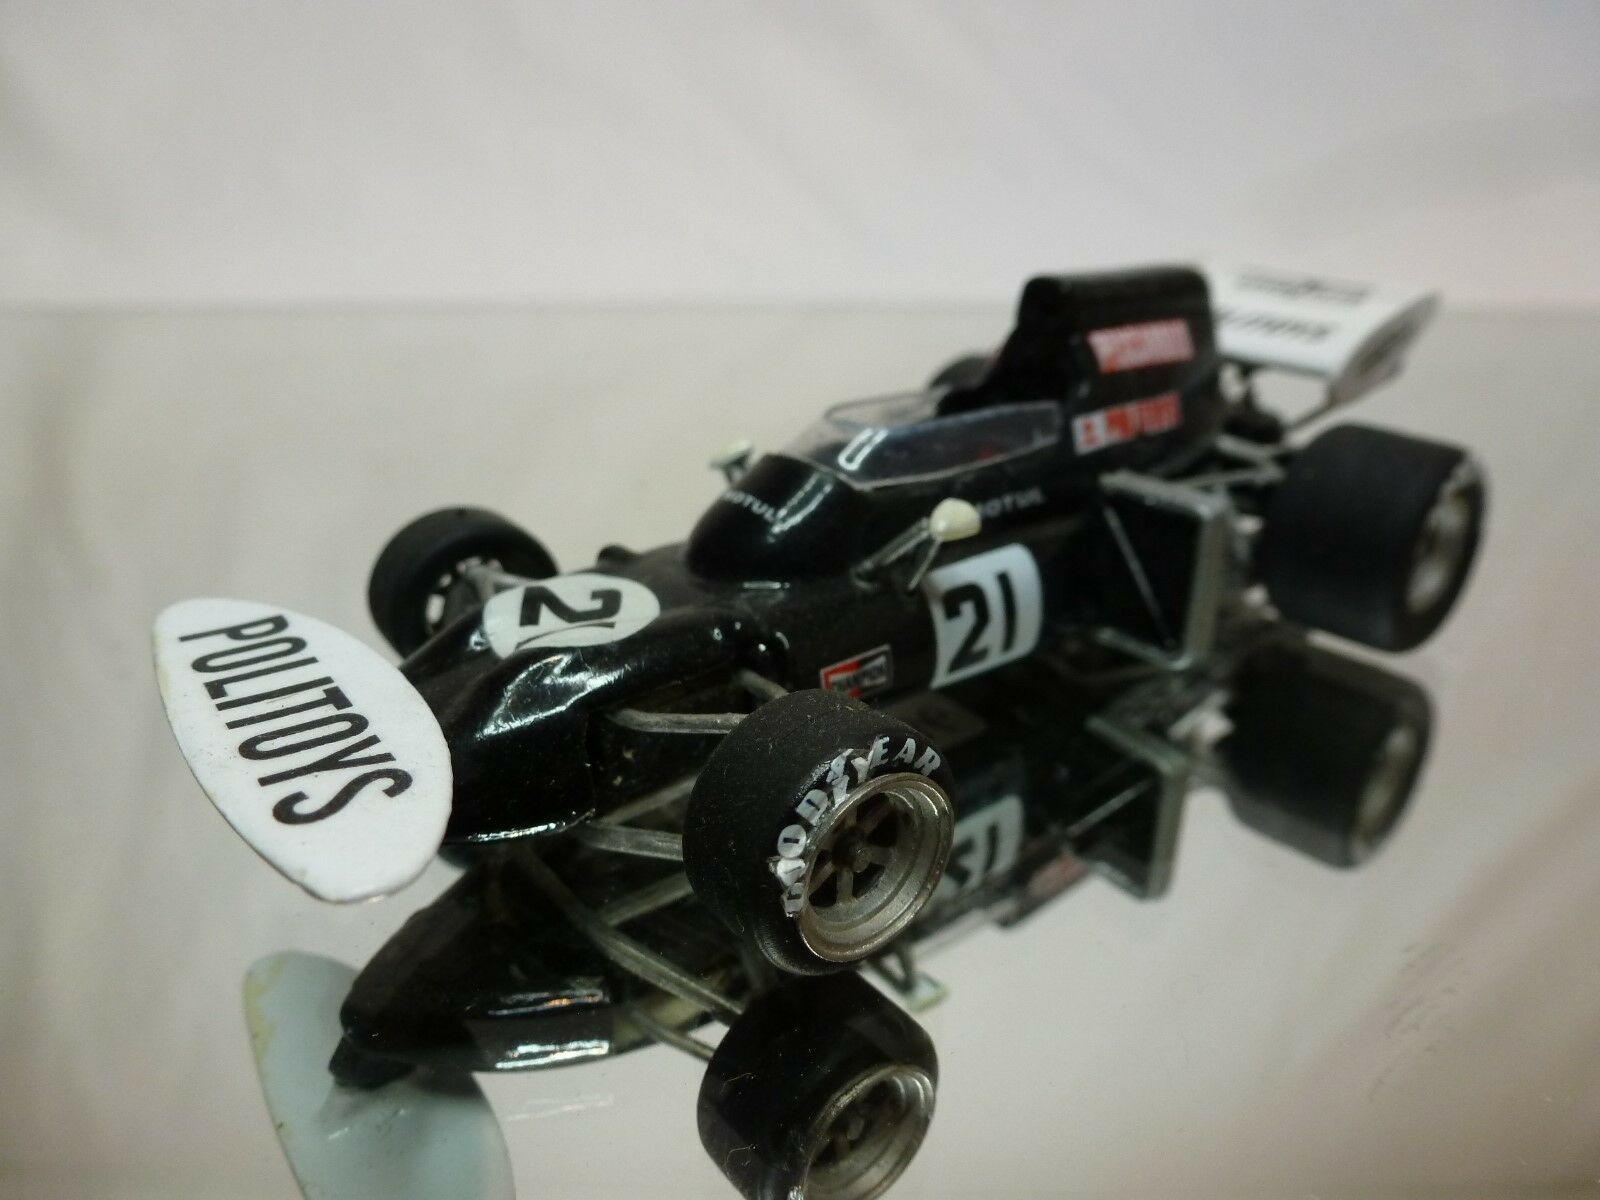 KIT (built) - formule 1 car 1972 henri pescarolo POLITOYS 1 43  NICE CONDITION